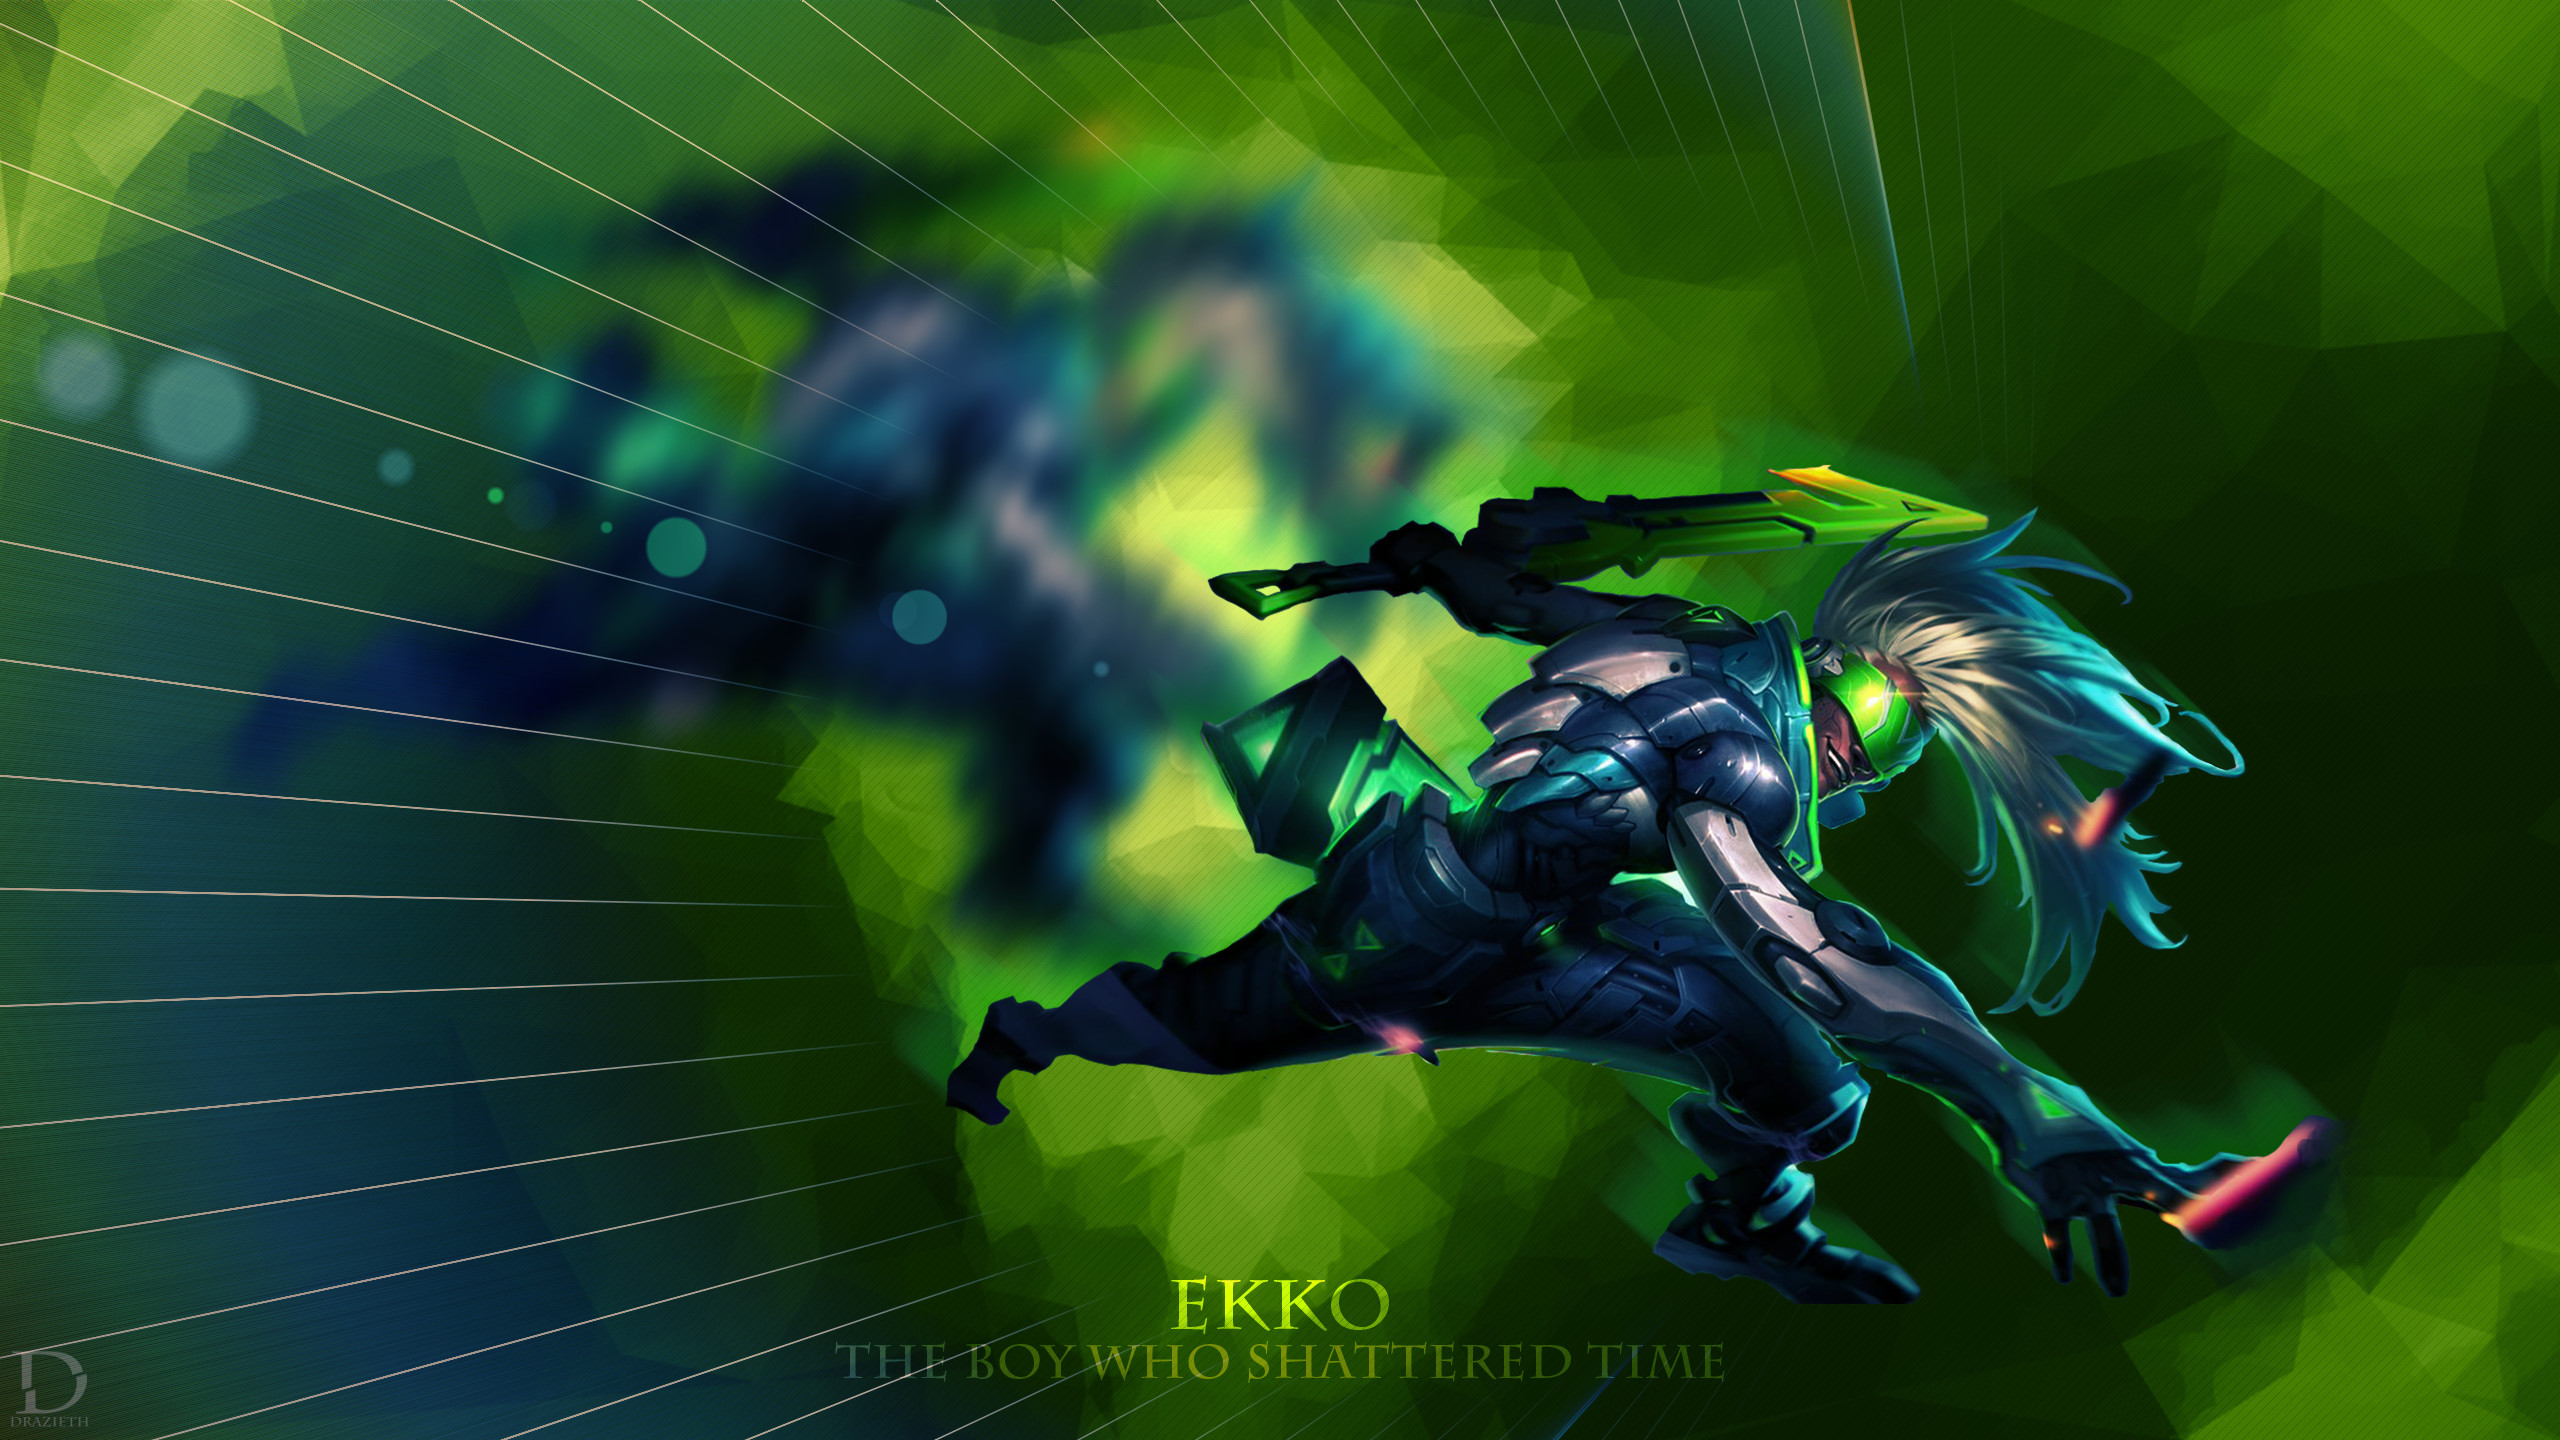 2560x1440 ... Project Ekko - League of Legends Wallpaper by Drazieth